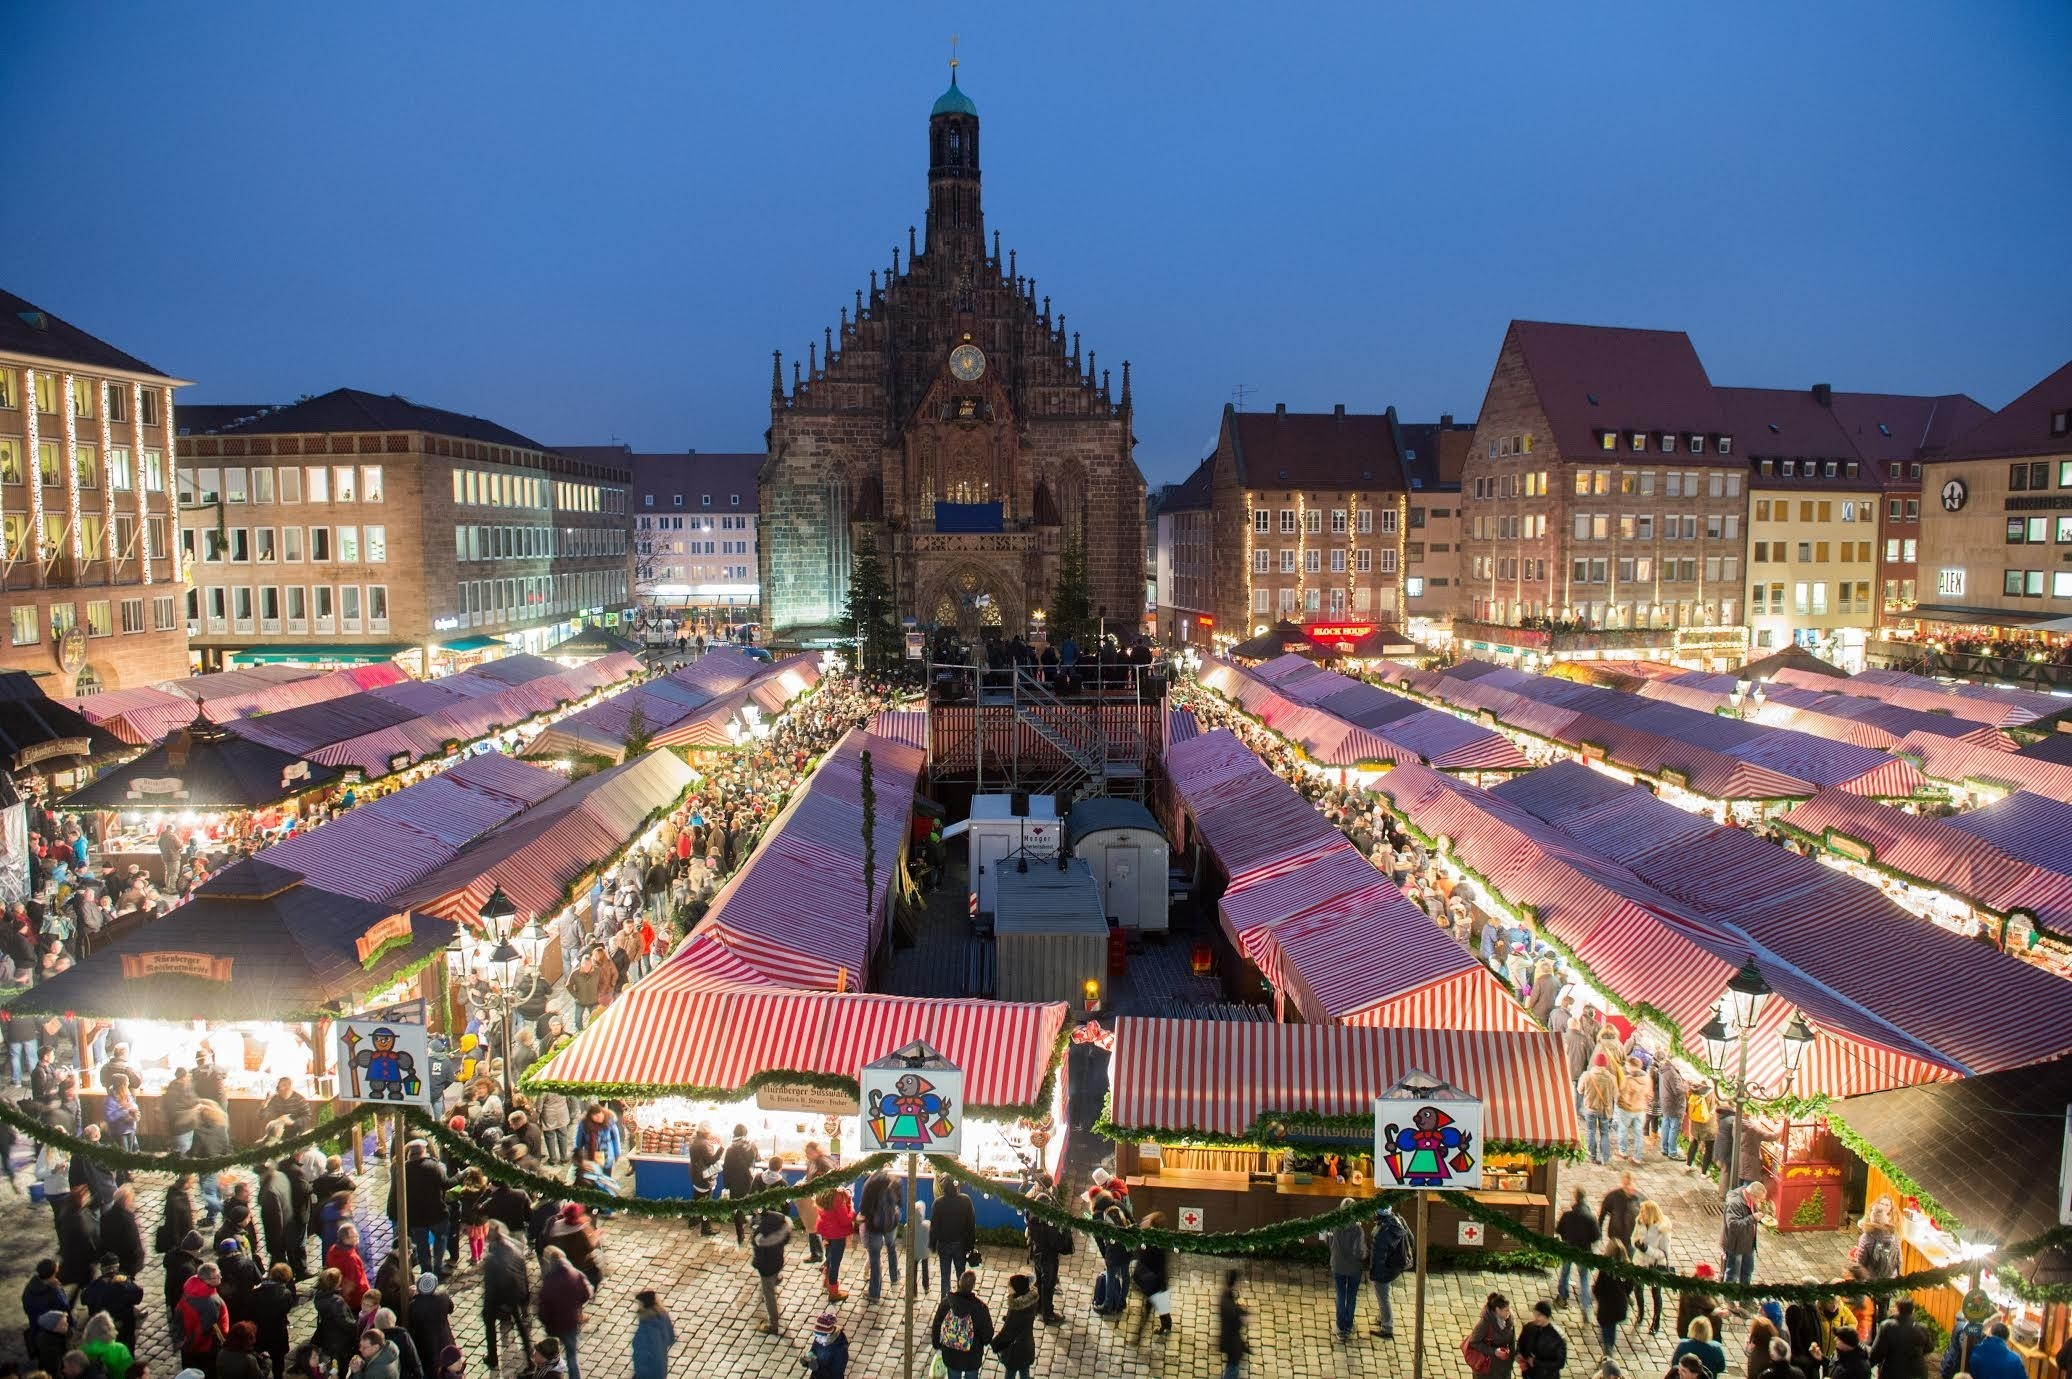 An aerial view of a Christmas market in Nuremberg